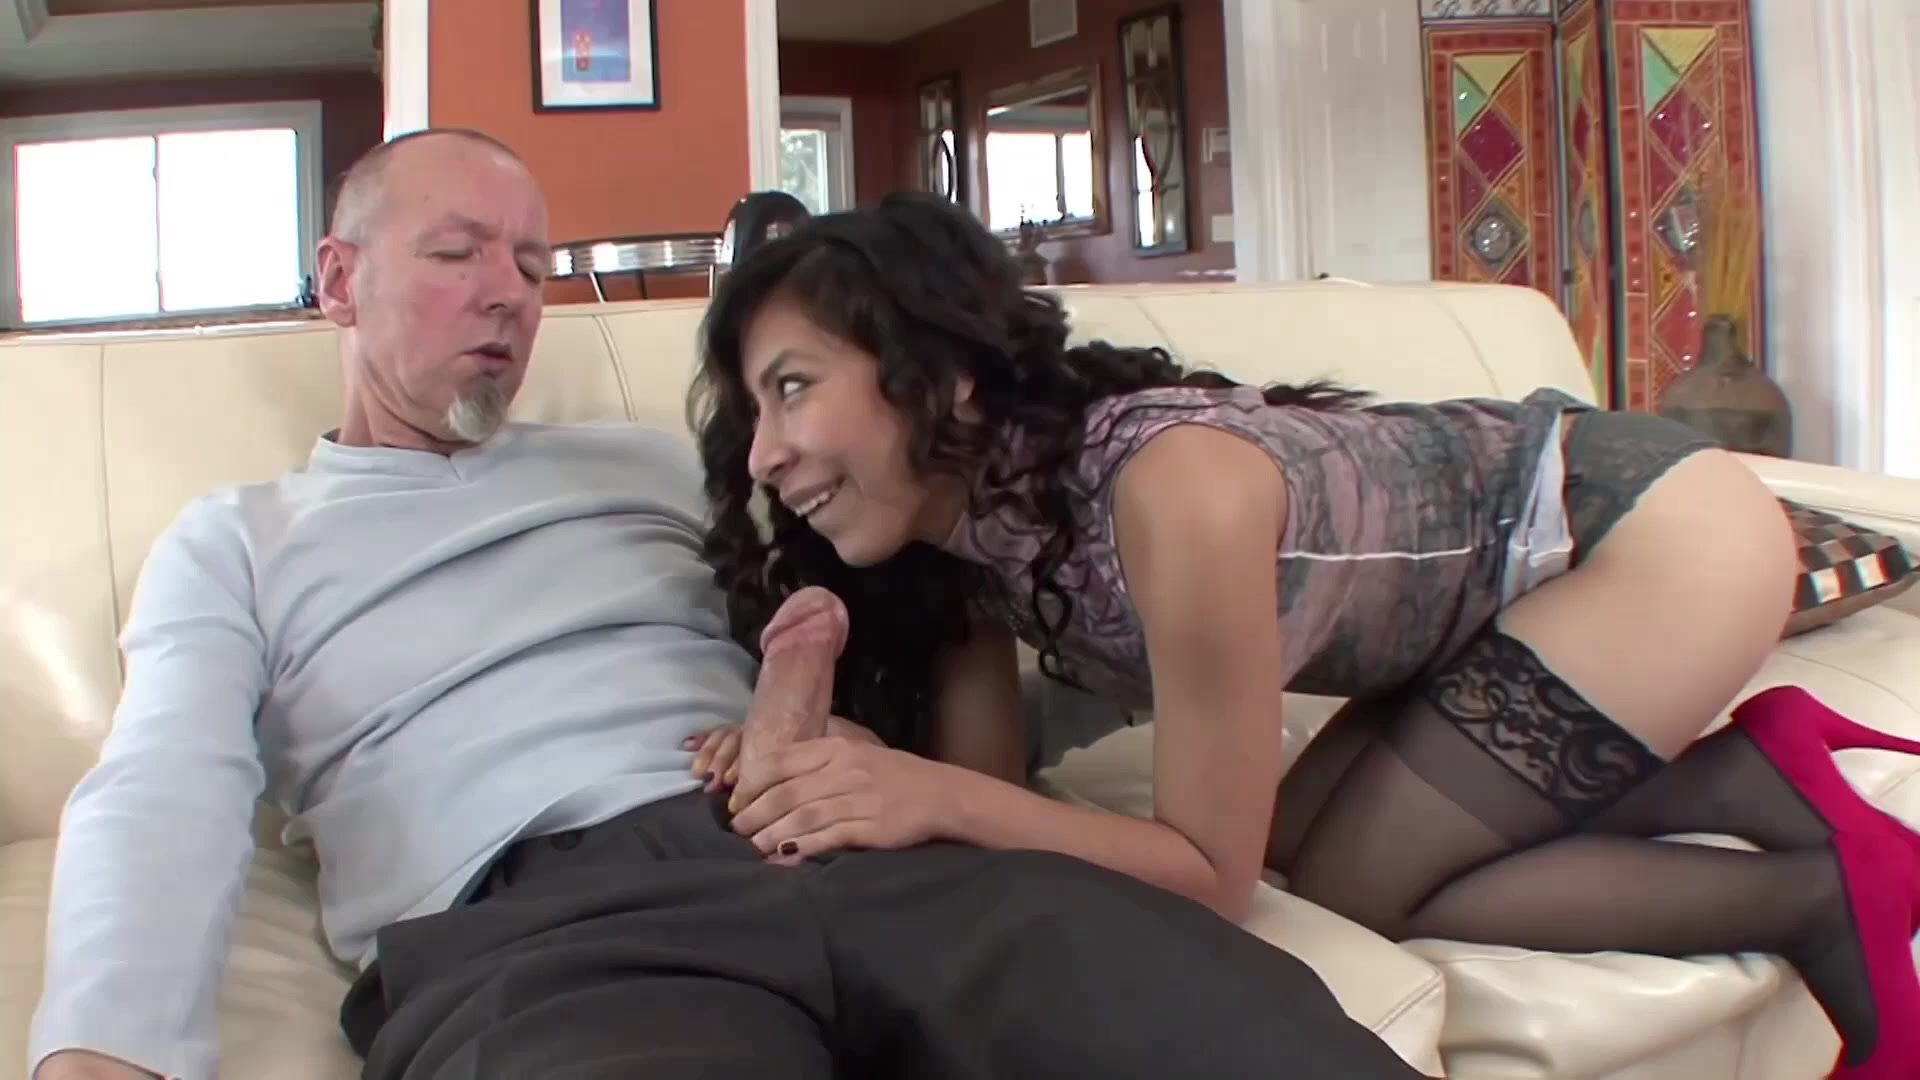 Me And My Stepdad Fuck While Mom Is Away